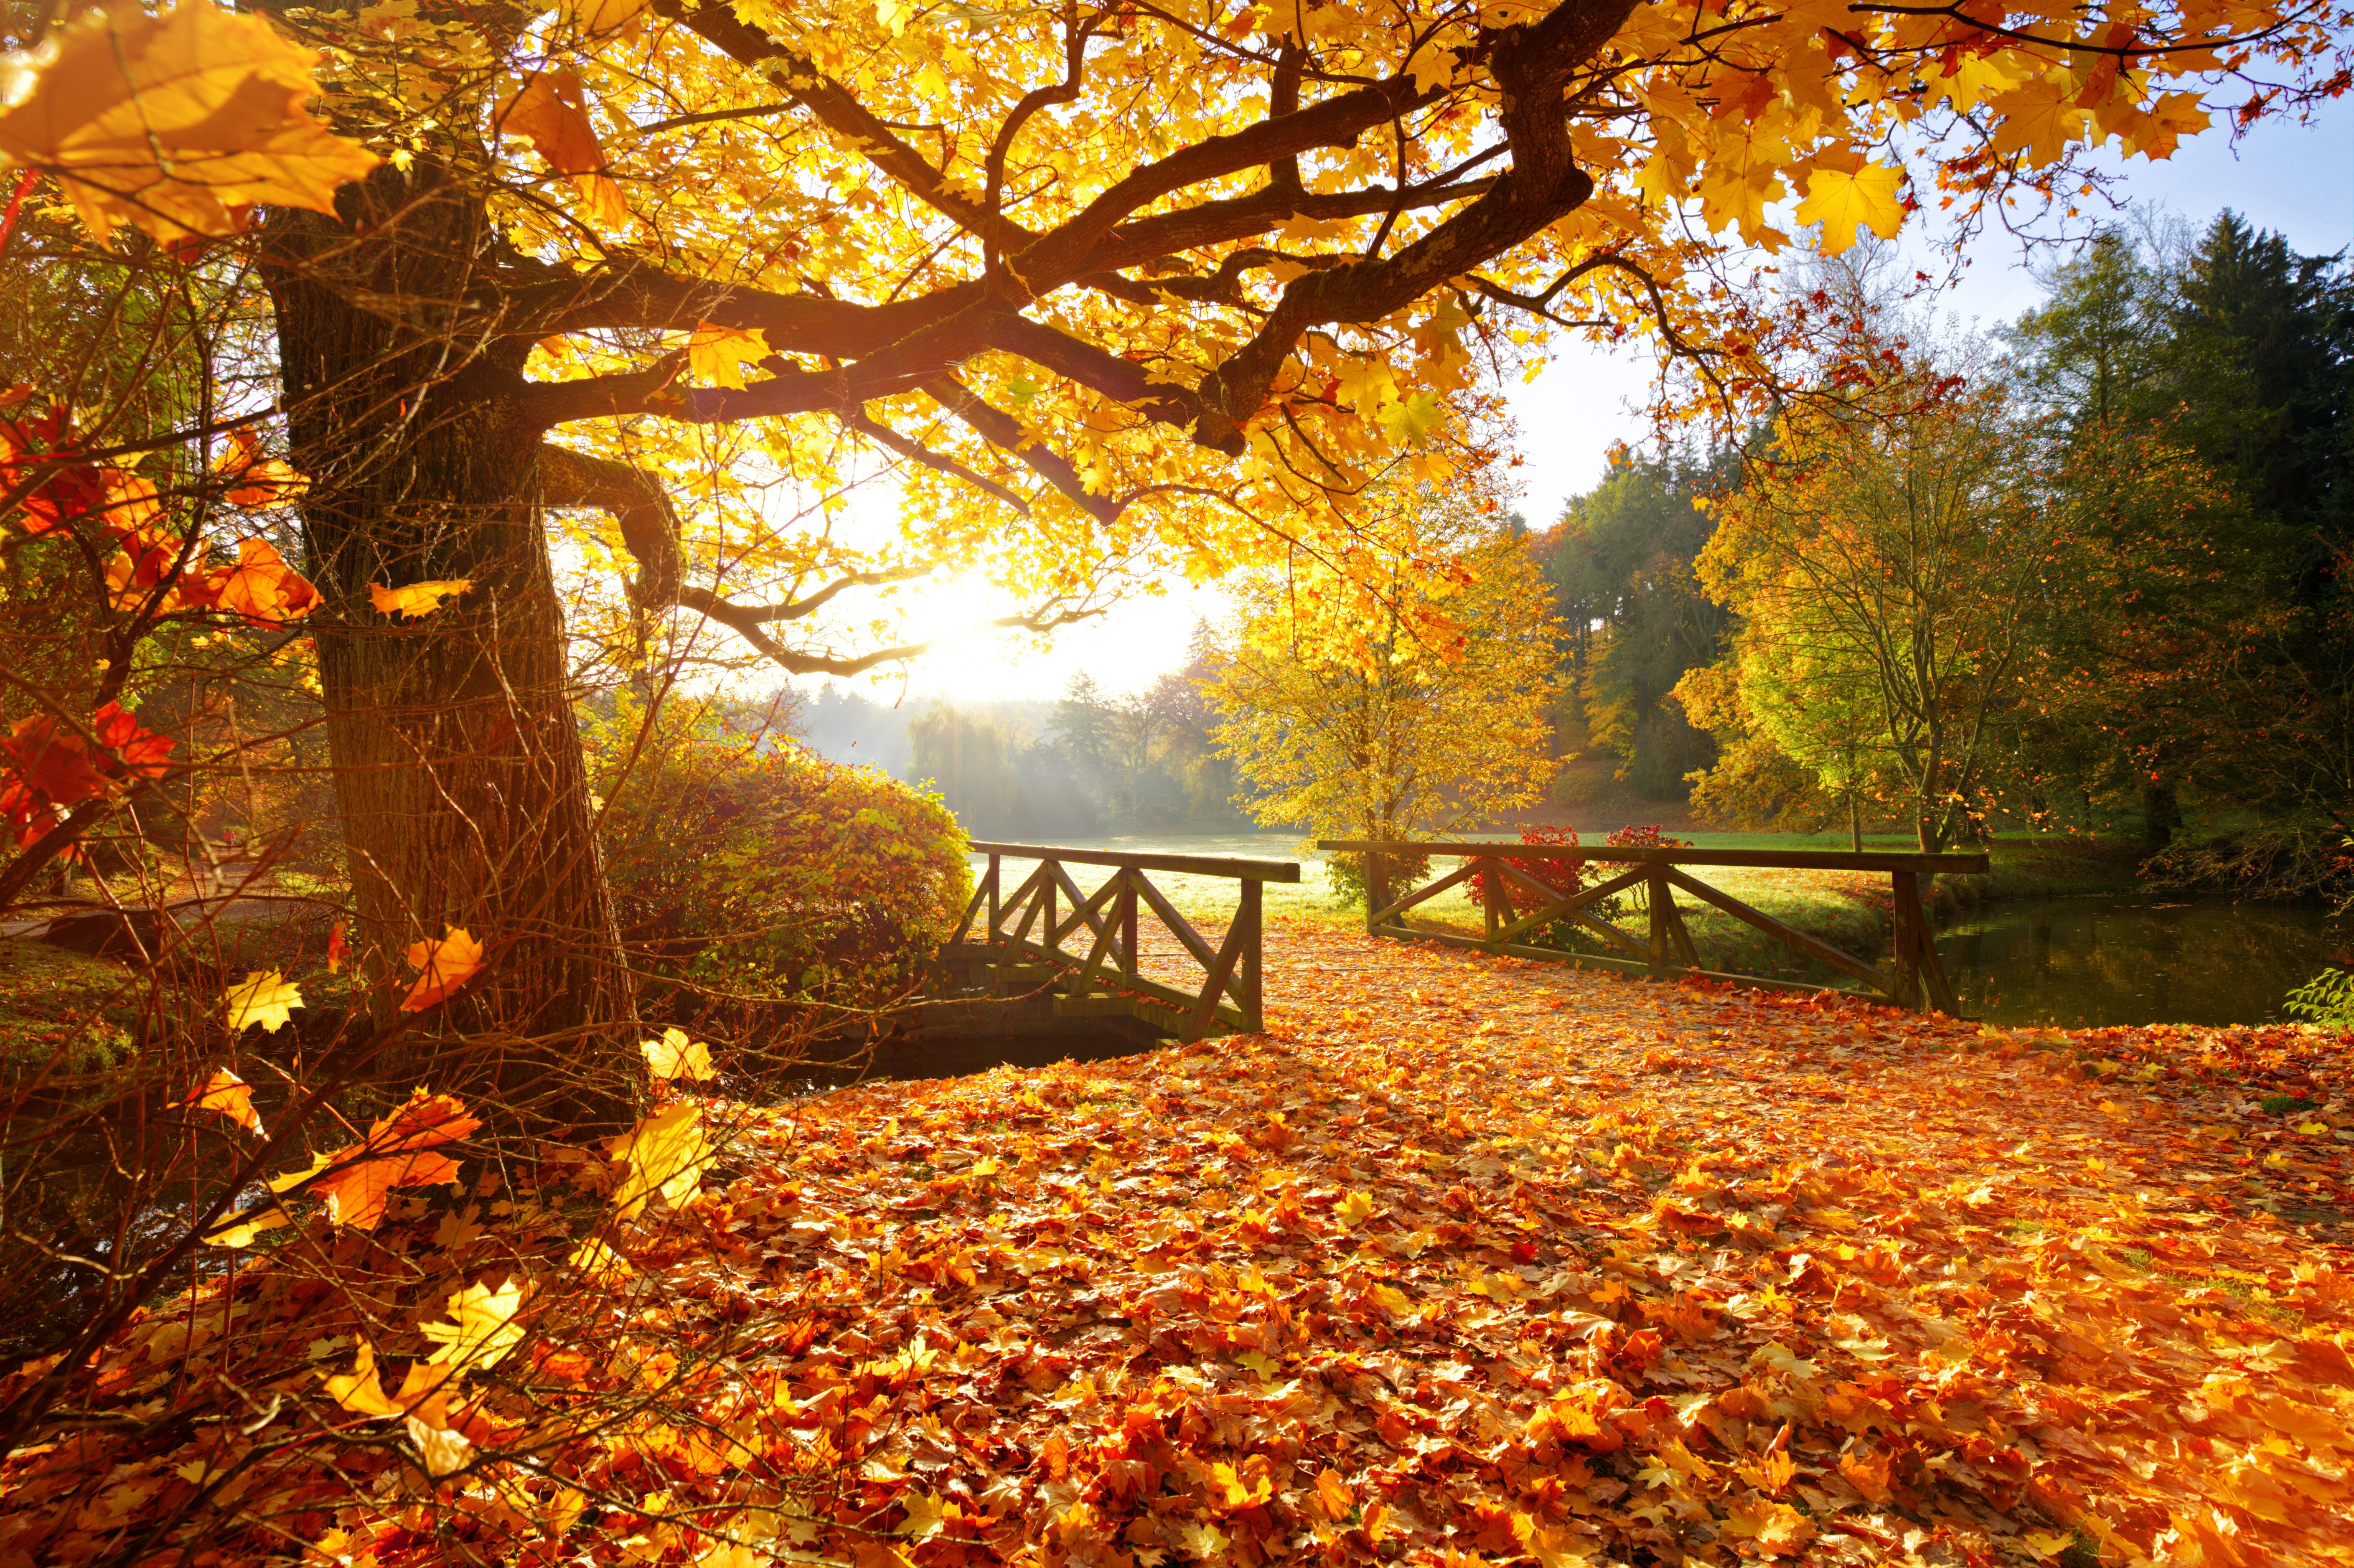 Photo of a bridge in the forest at golden hour. Light shines through the autumn foliage.